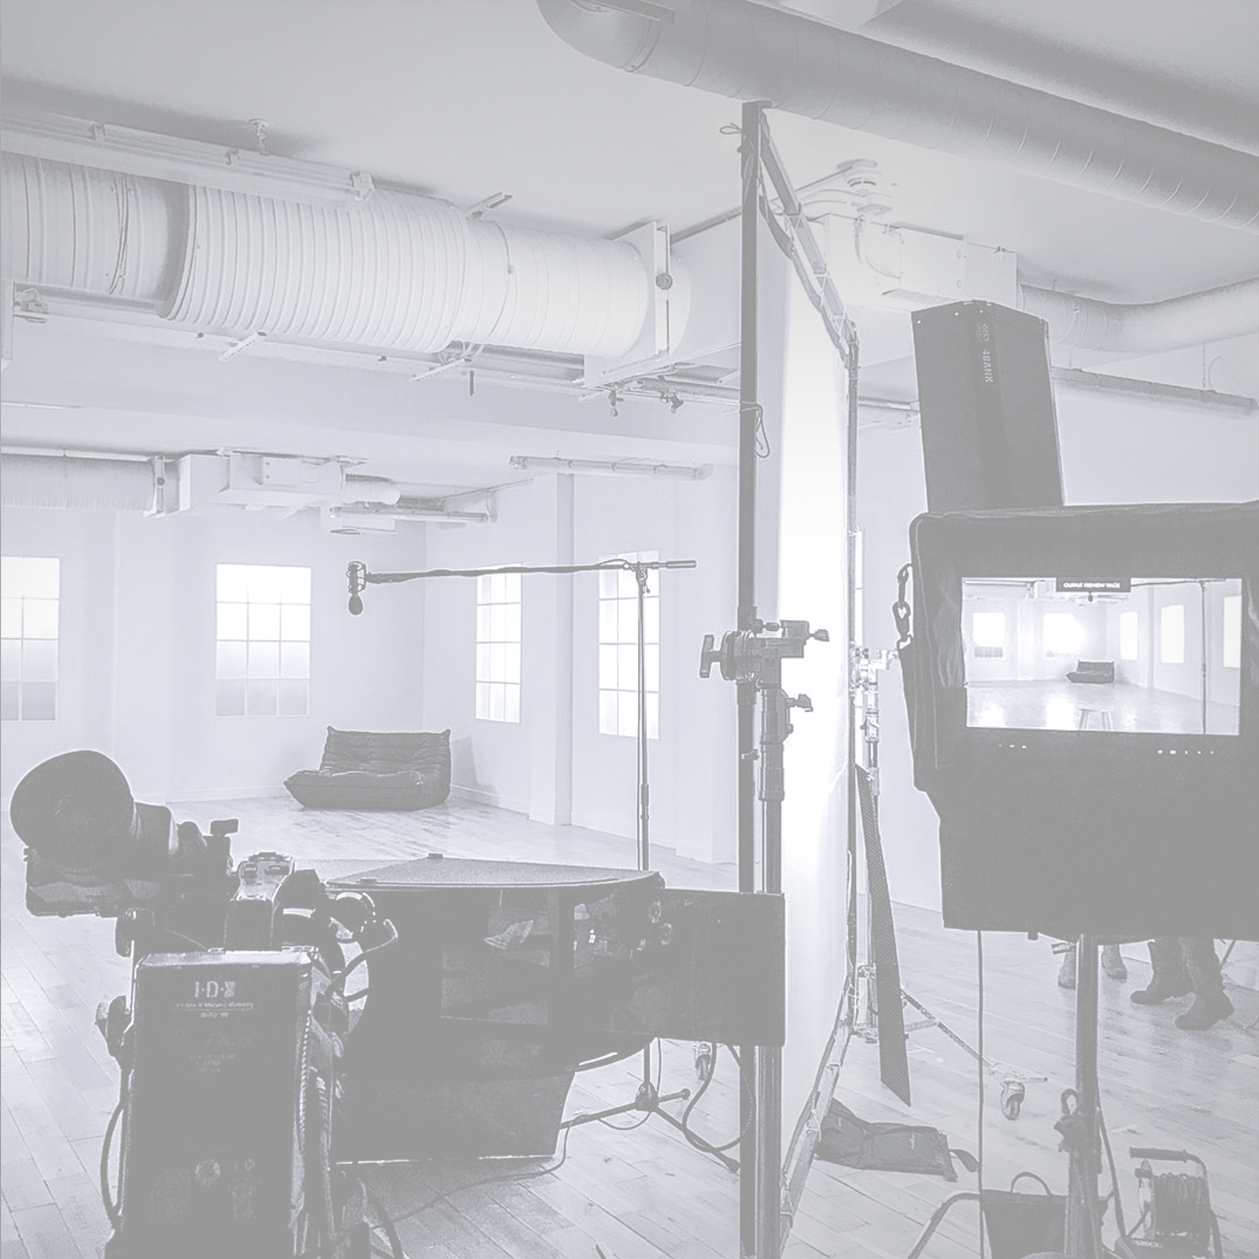 // VIDEO PRODUCTION - We do everything from concepting shoots, location recceing, shooting stills and moving images, full service in-house editing and structuring campaign implementation… and that's just on a quiet day. Over the past six months we've shot everything from quick bites on social media to national campaigns on TV around the country. There's no job too big or small.